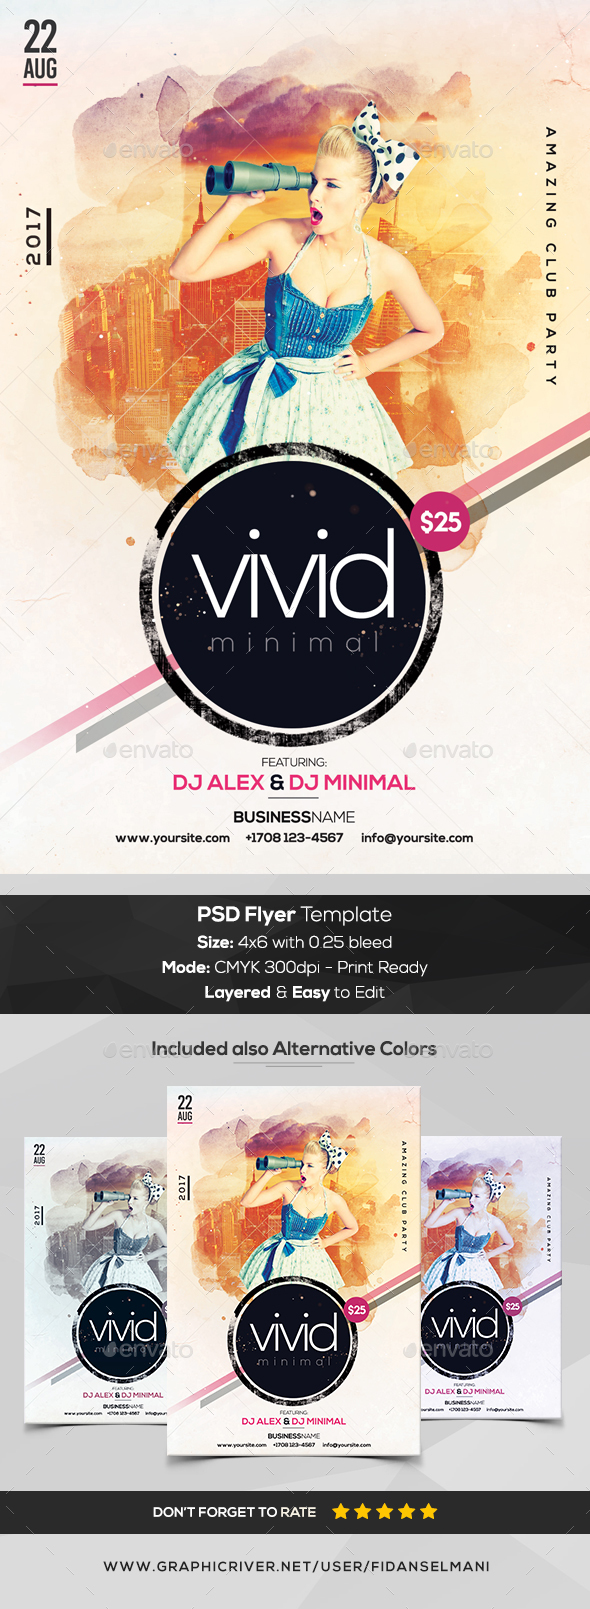 GraphicRiver Vivid Minimal PSD Flyer Template 20406969